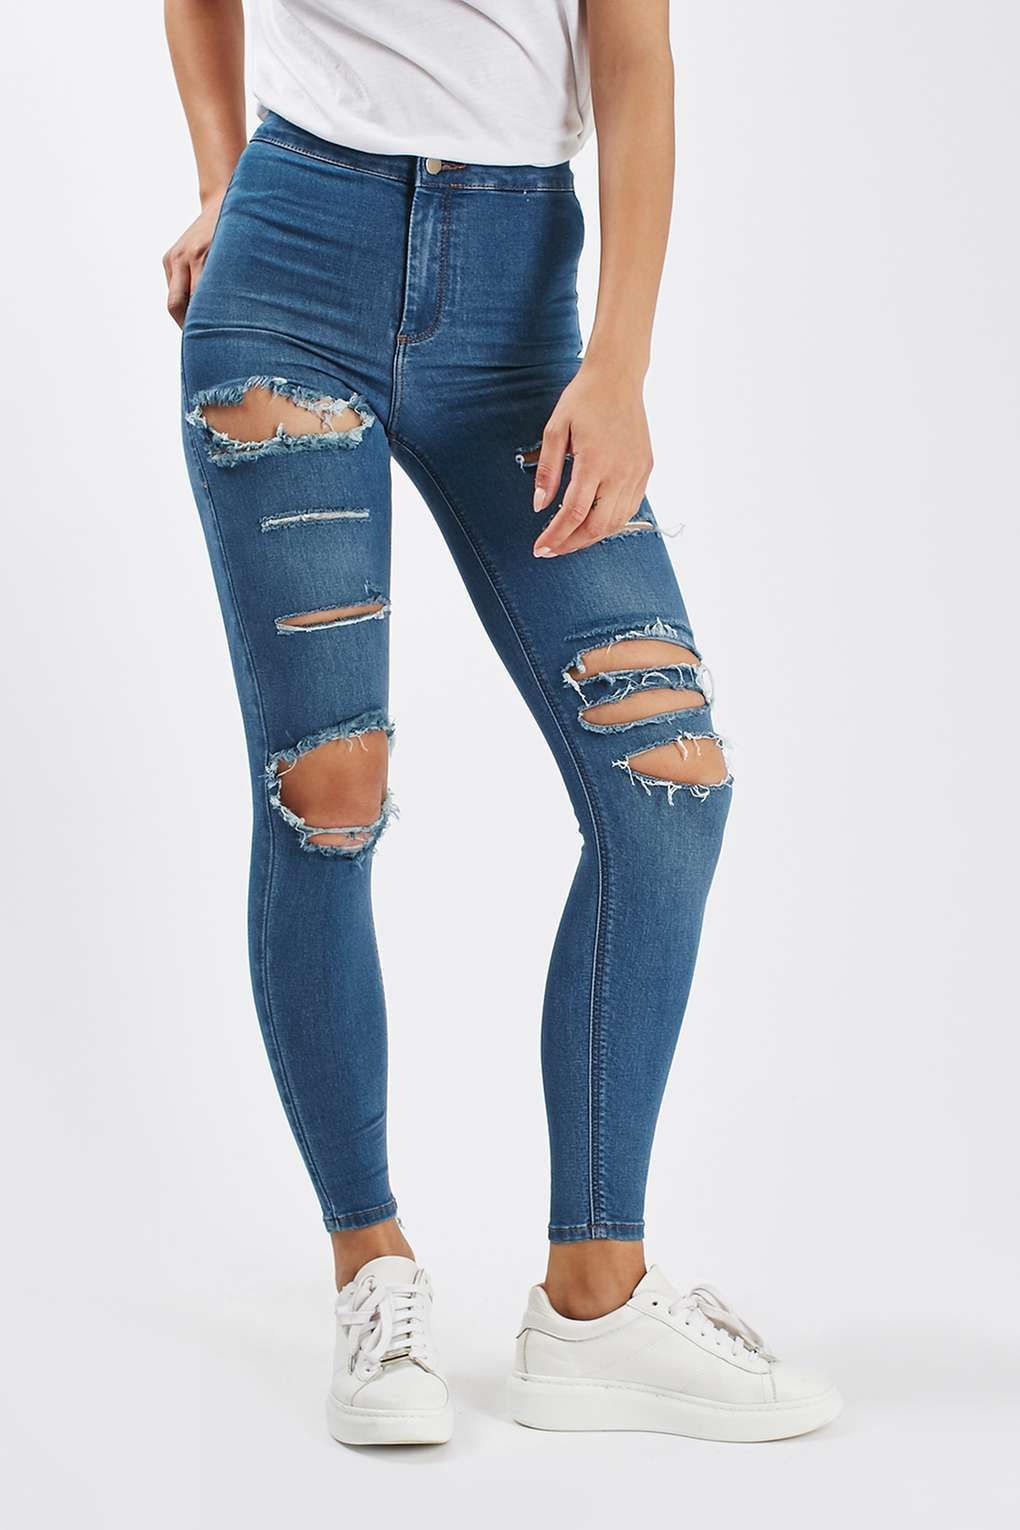 Moto Super Rip Blue Joni Jeans Outfits Pinterest Jeans Ripped